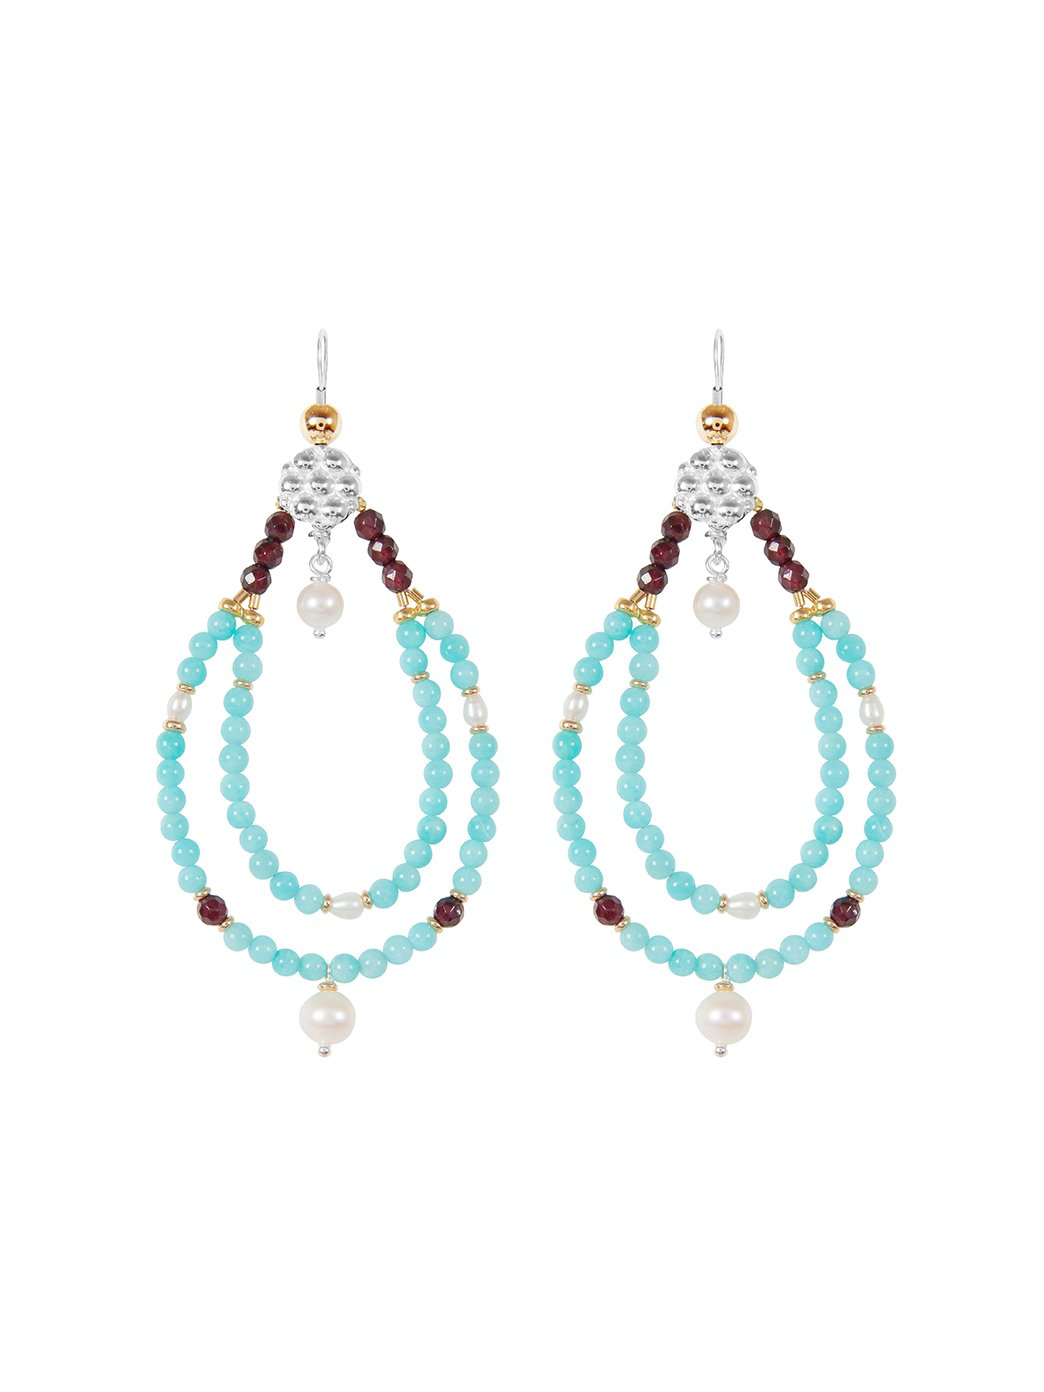 Fiorina Jewellery Rahini Earrings Amazonite